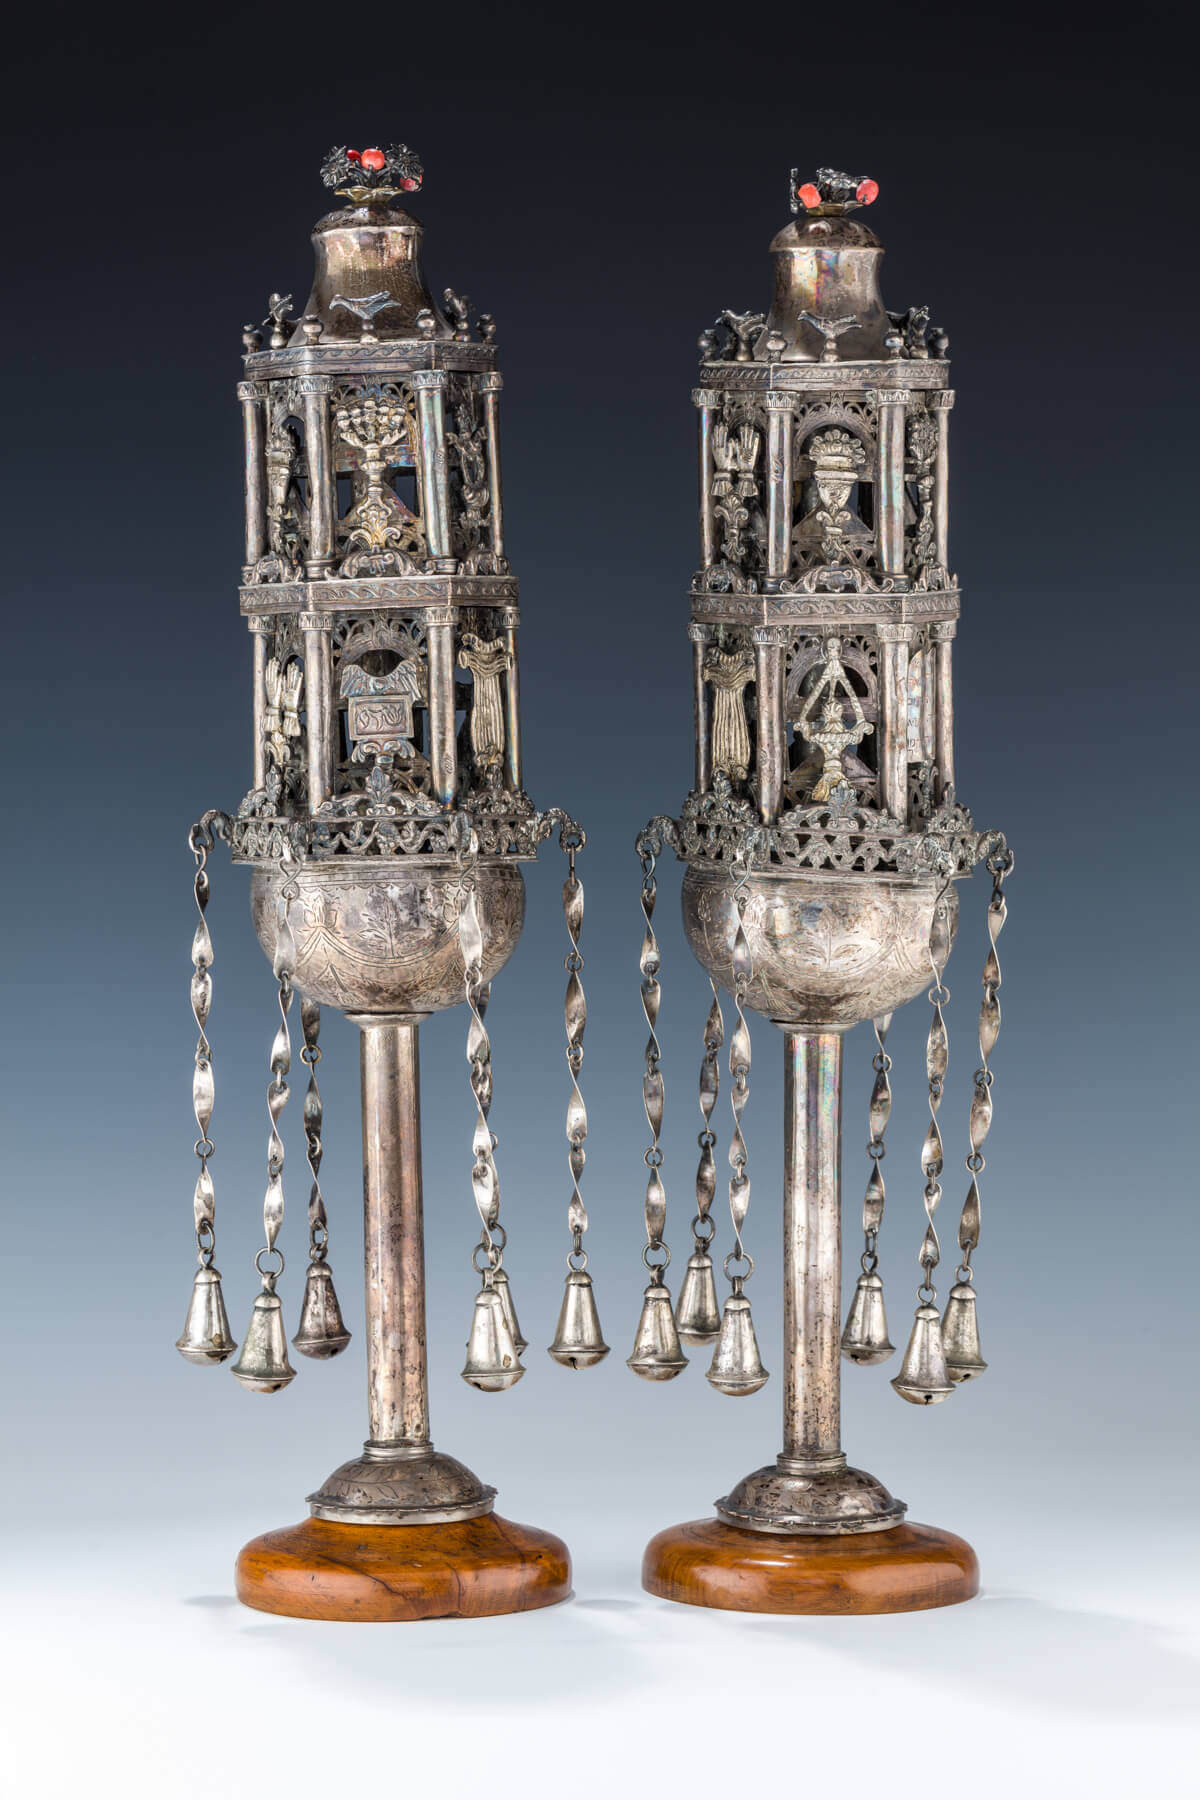 126. A PAIR OF SILVER TORAH FINIALS